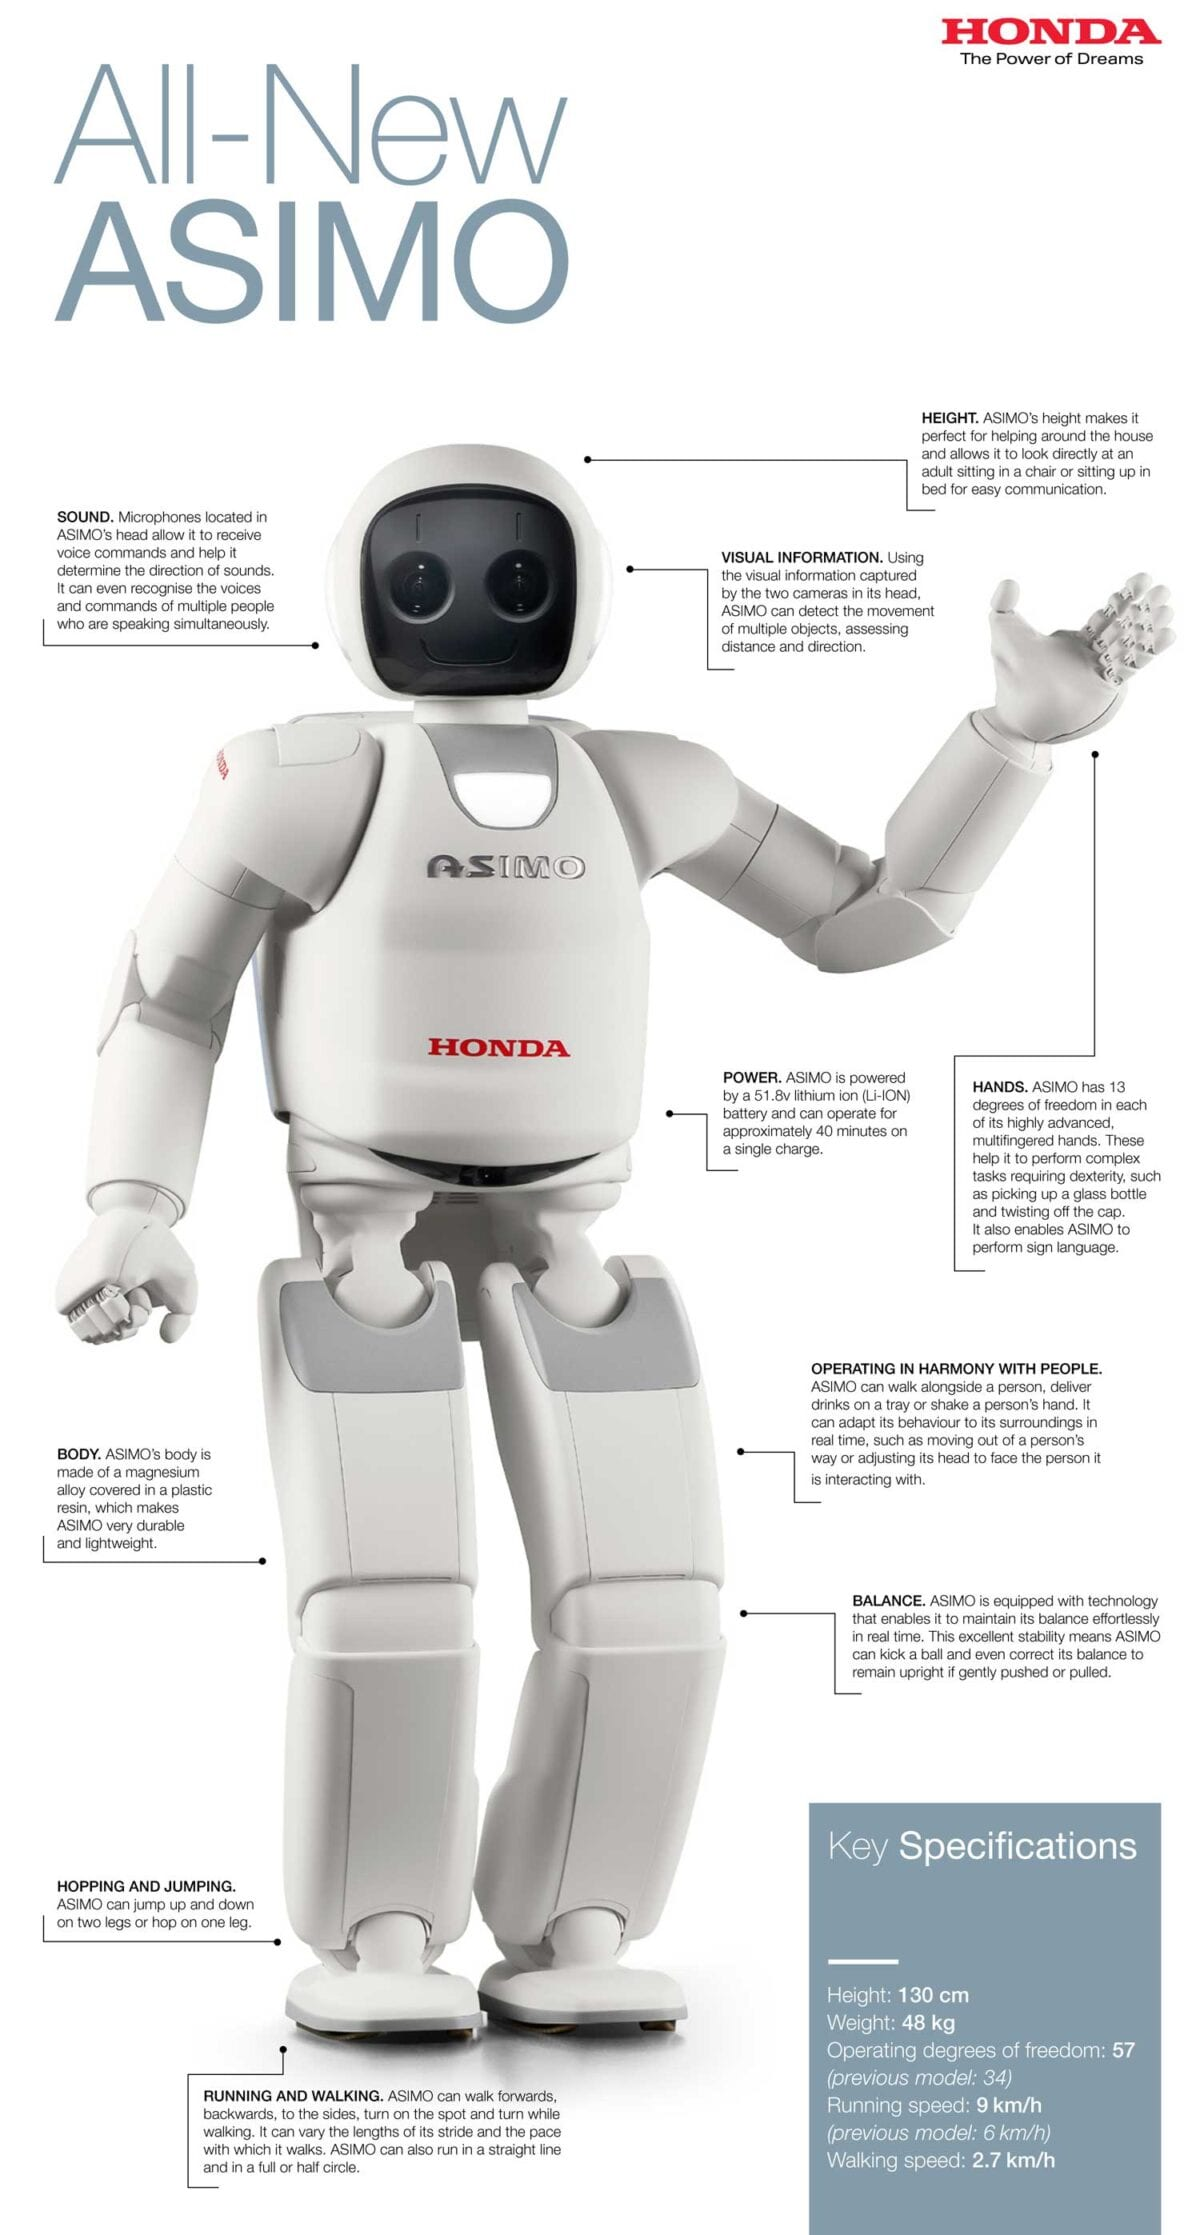 All-New-Asimo-annotated